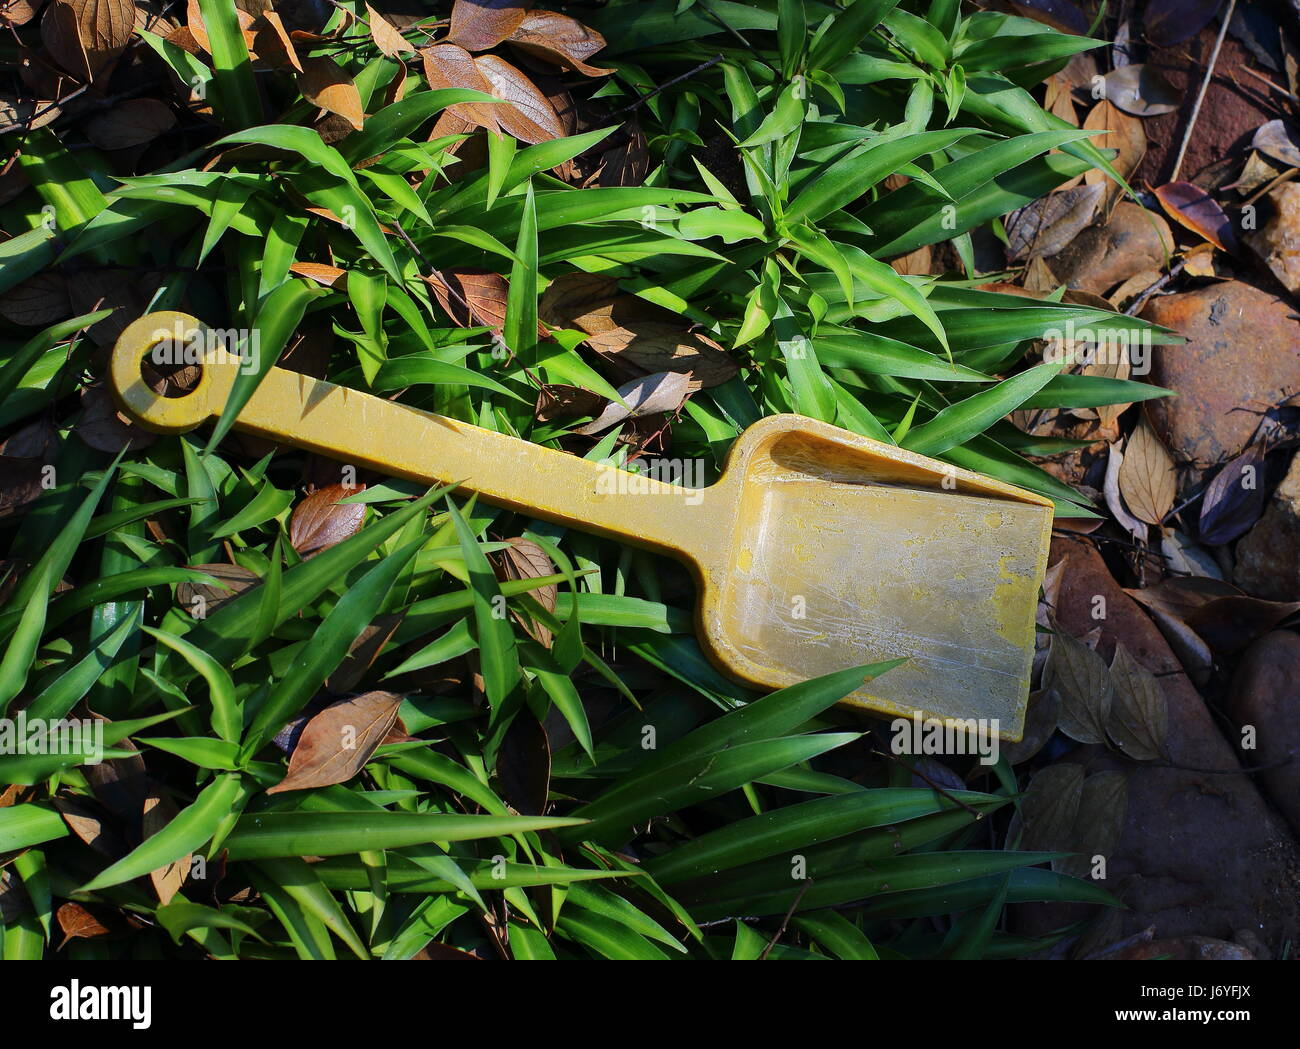 An abandoned and faded yellow child's toy spade - Stock Image